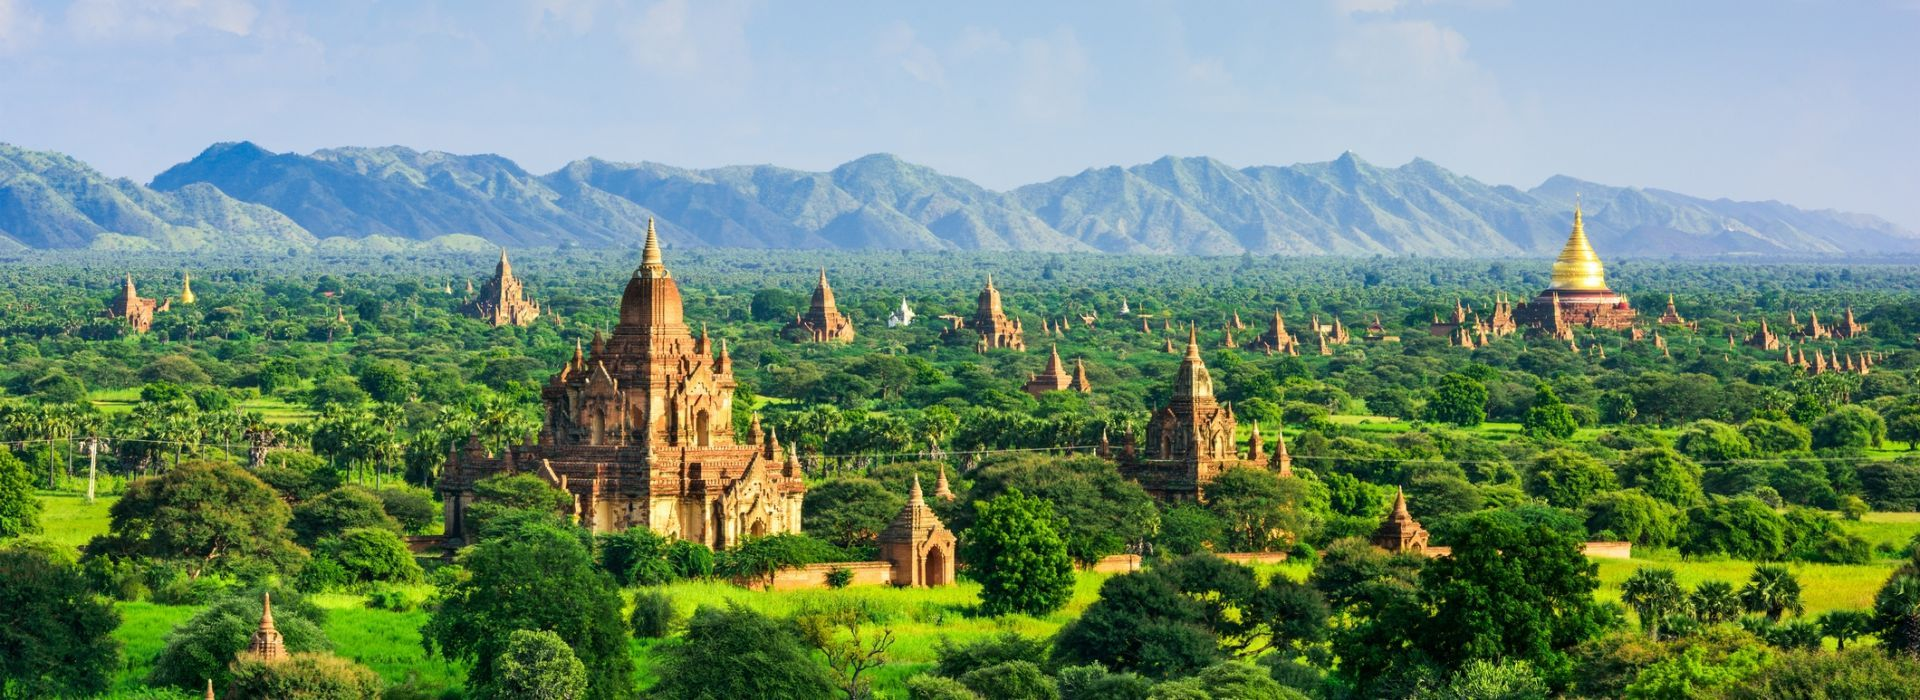 Sightseeing, attractions, culture and history Tours in Myanmar